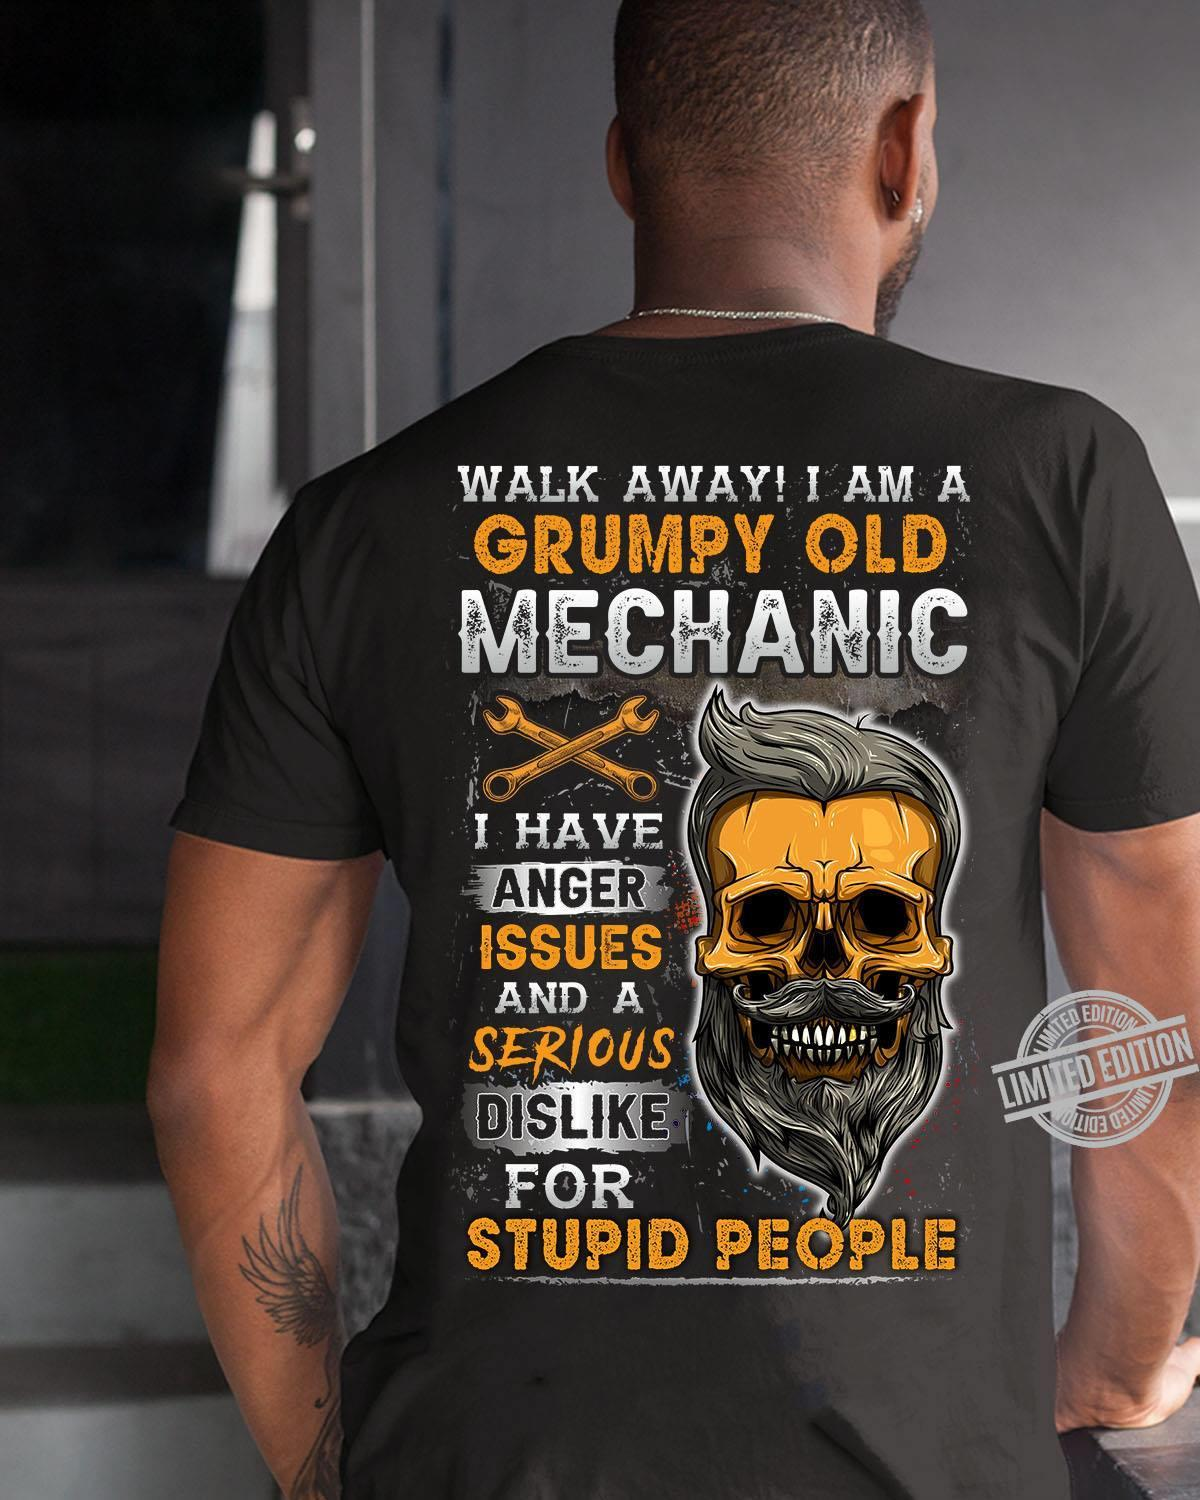 Walk Away I Am A Grumpy Old Mechanic I Have Anger Issues And A Serious Dislike For Stupid People Shirt